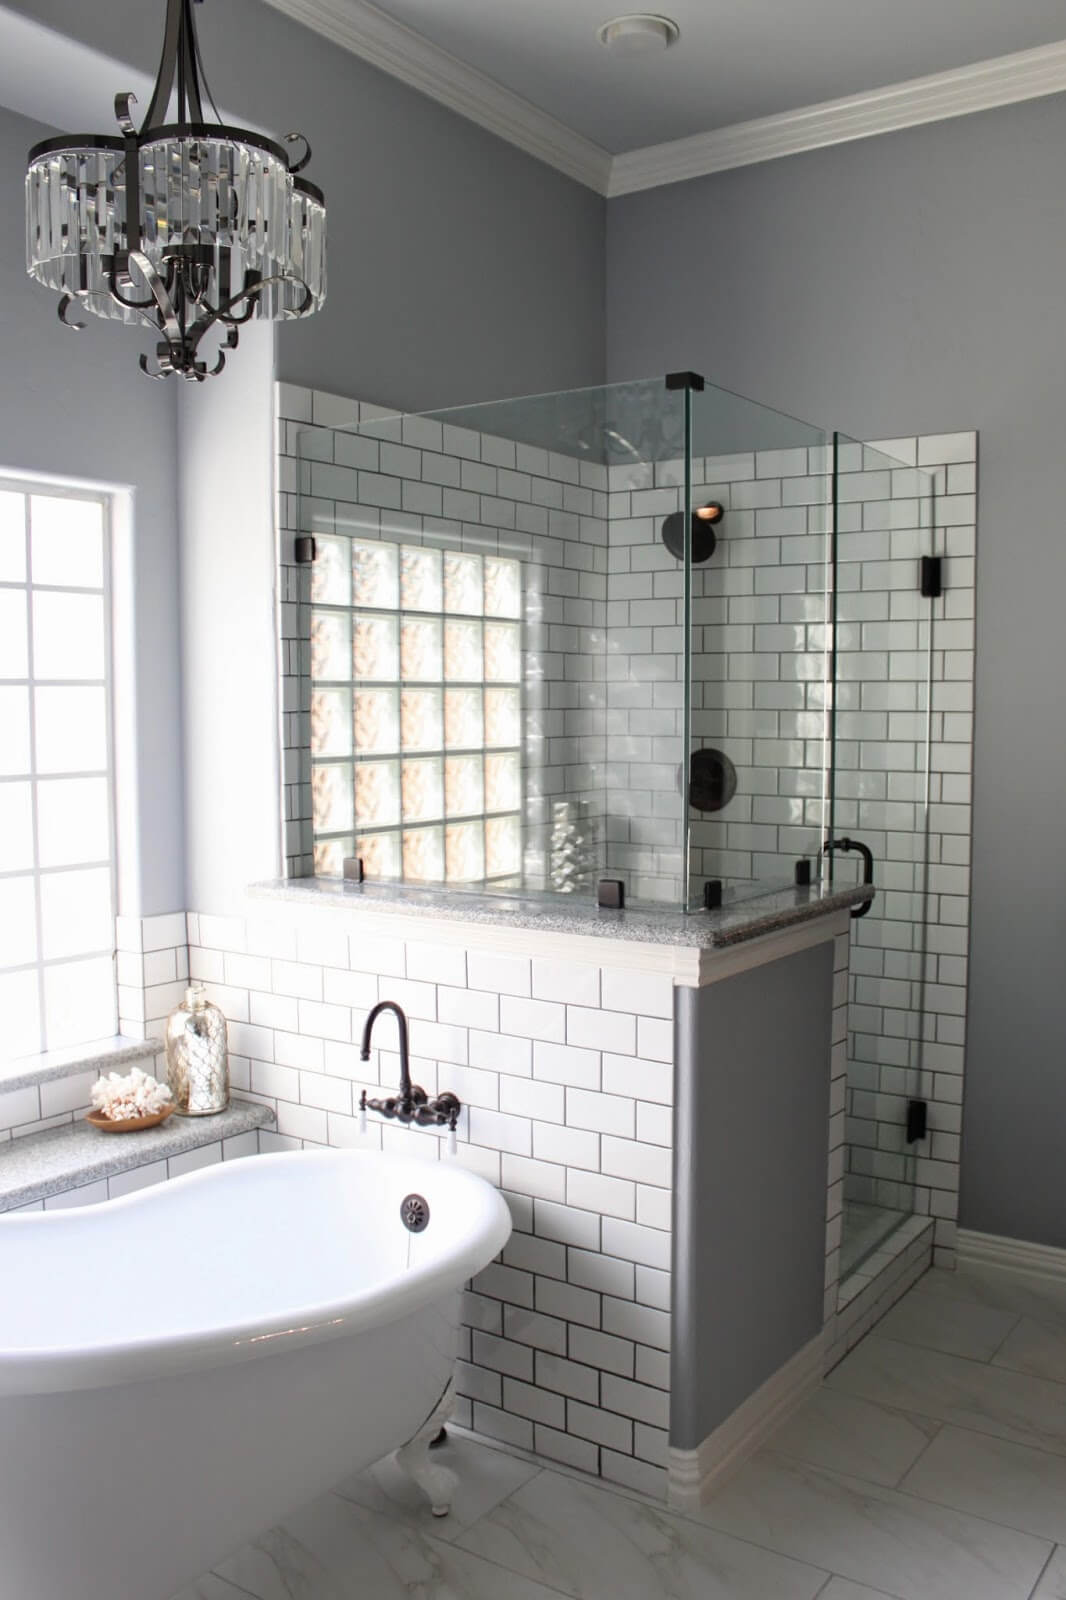 Blending Modern and Traditional for a Timeless Bathroom Makeover